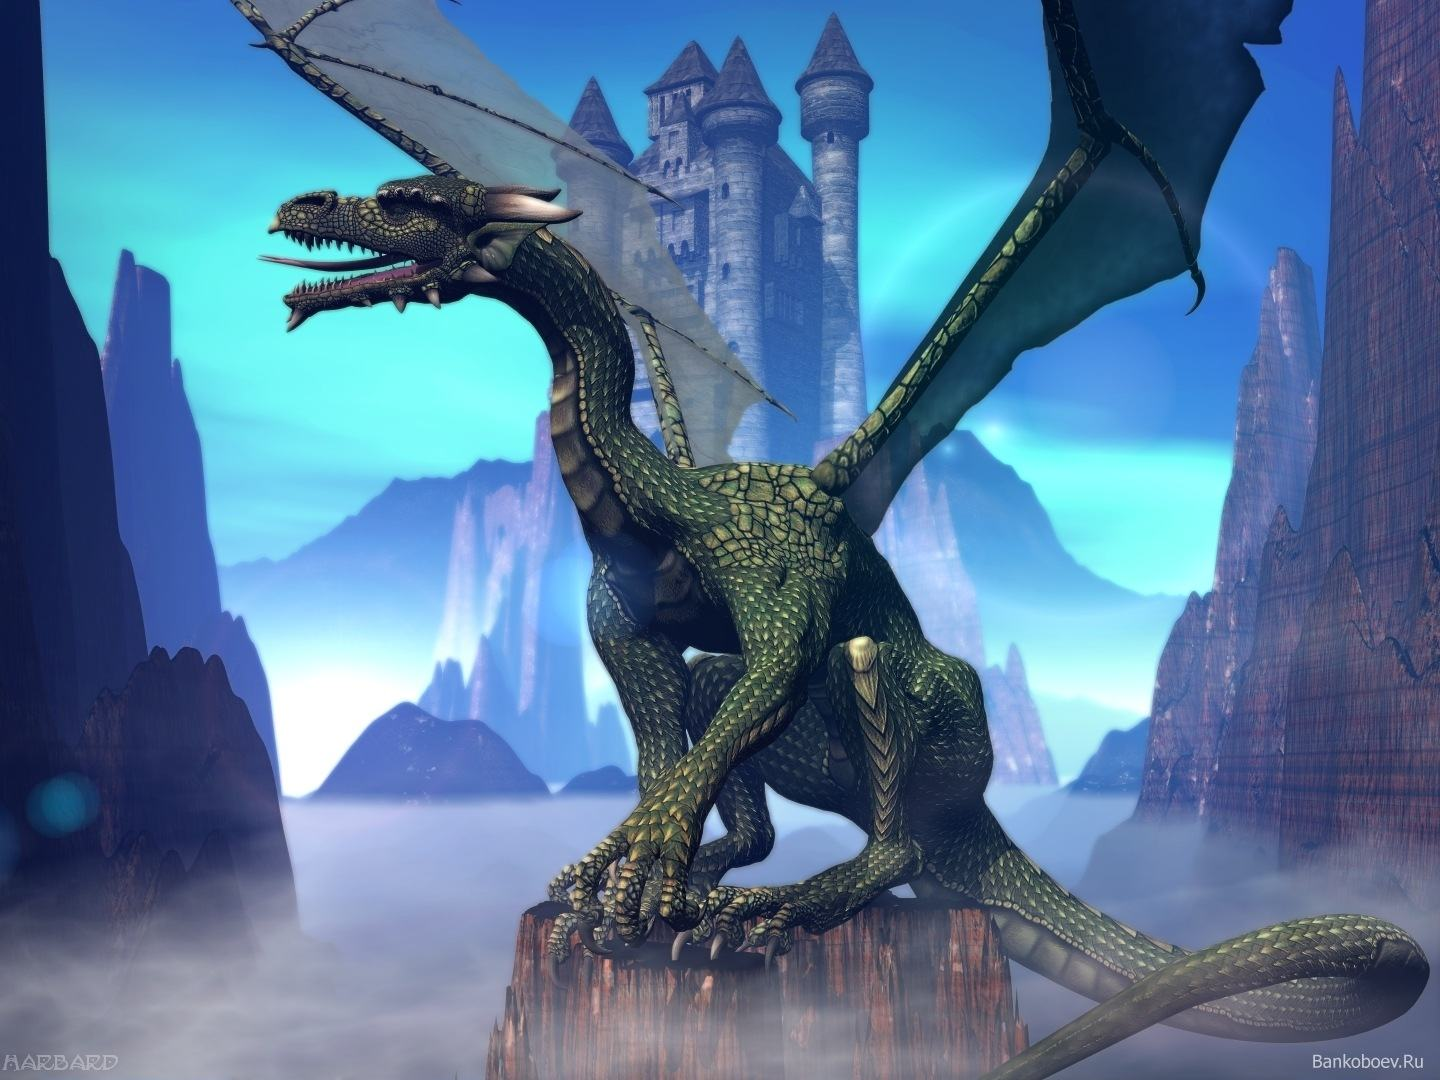 Wallpapers Backgrounds   3D dragon animation wallpaper bit blue sea 1440x1080